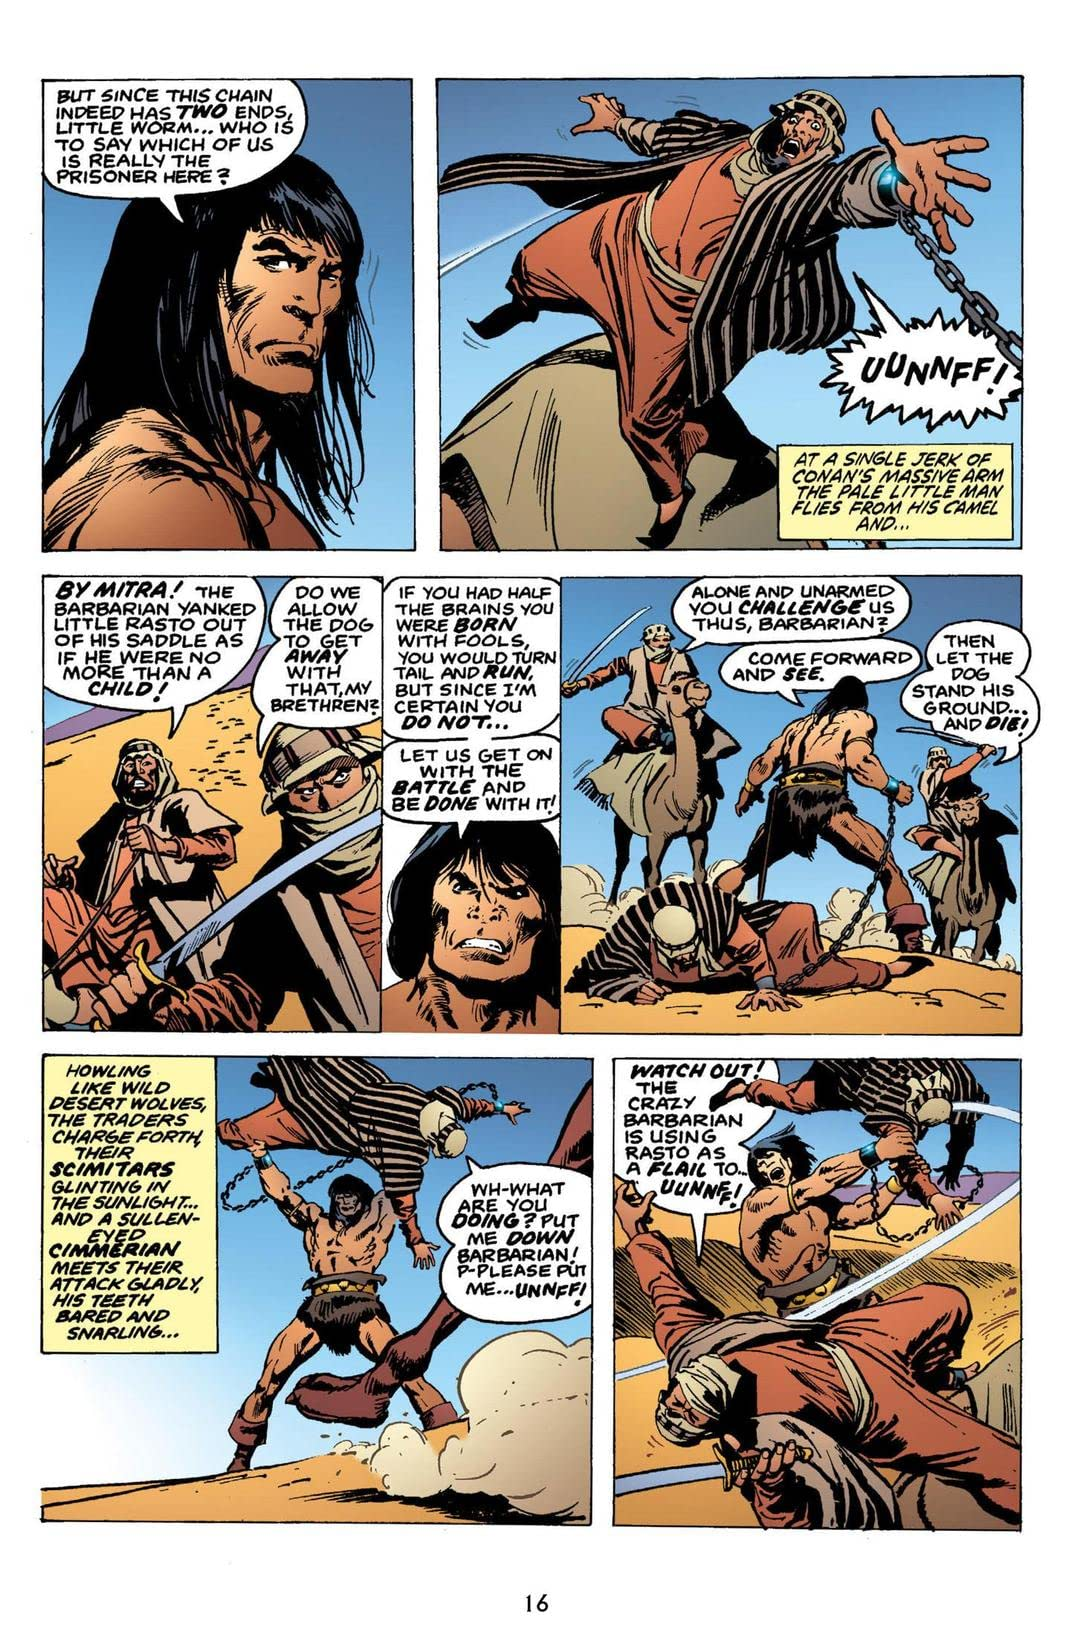 Chronicles of Conan Vol. 15: The Corridor of Mullah-Kajar and Other Stories